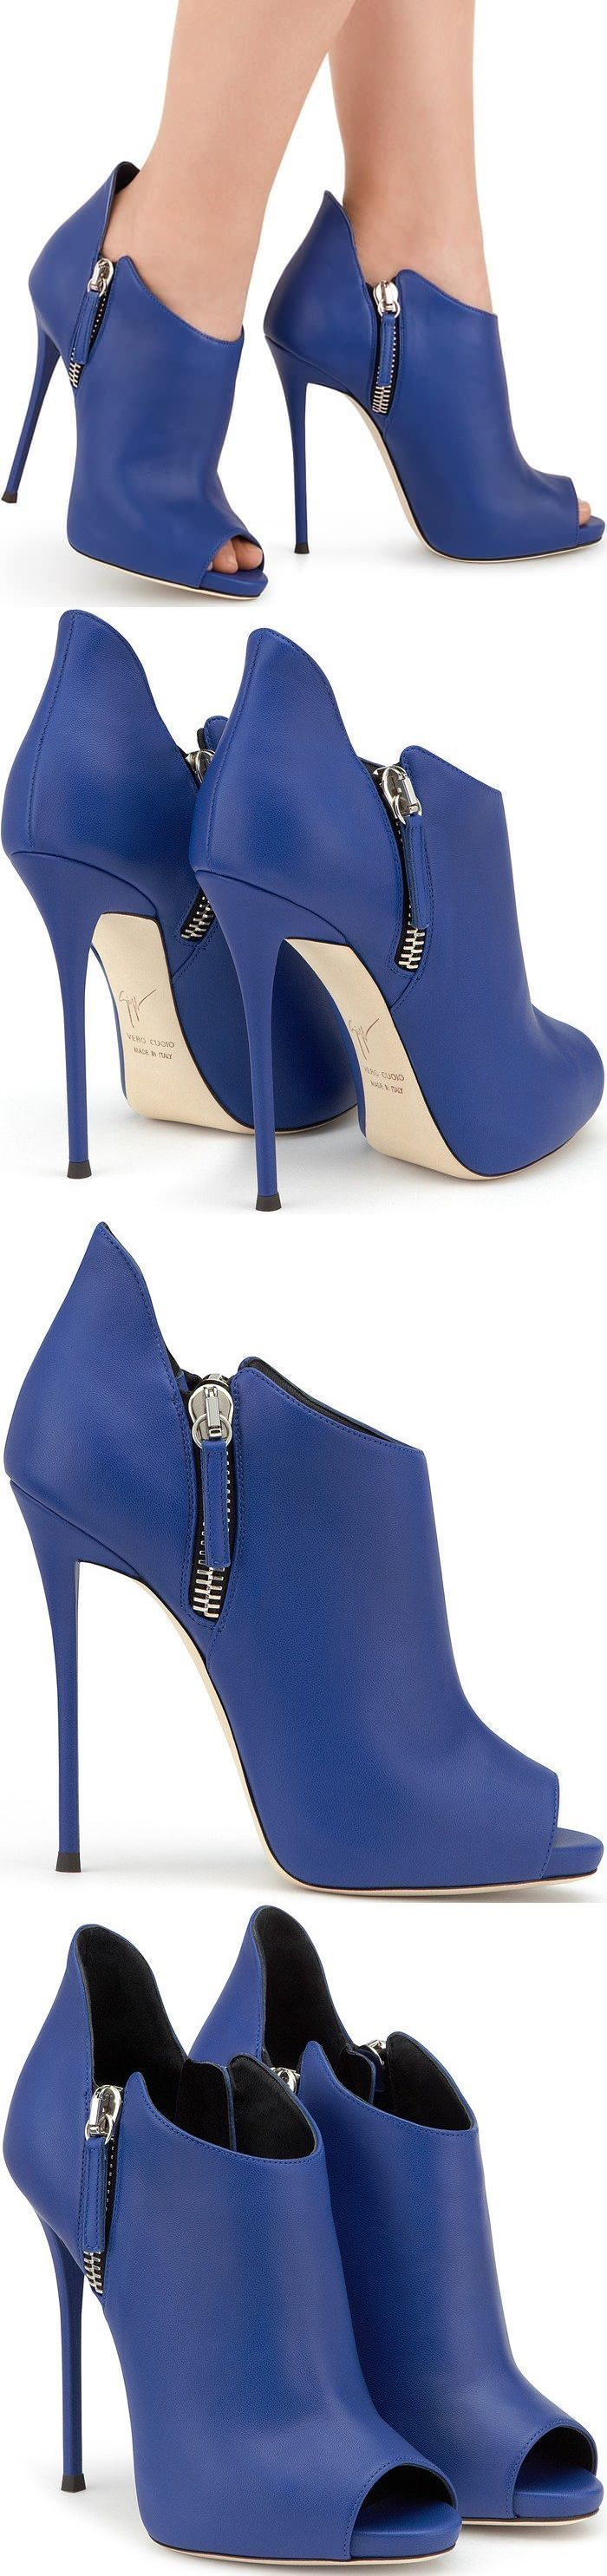 Blue leather 'Malika' booties from Giuseppe Zanotti Design featuring a peep toe, gold-tone hardware, side zip fastenings, a branded insole and a high stiletto heel. #stilettoheelssandals #giuseppezanottiheelsstilettos #giuseppezanottiheelszapatos #giuseppezanottiheelsgold #giuseppezanottiheelspeeptoe